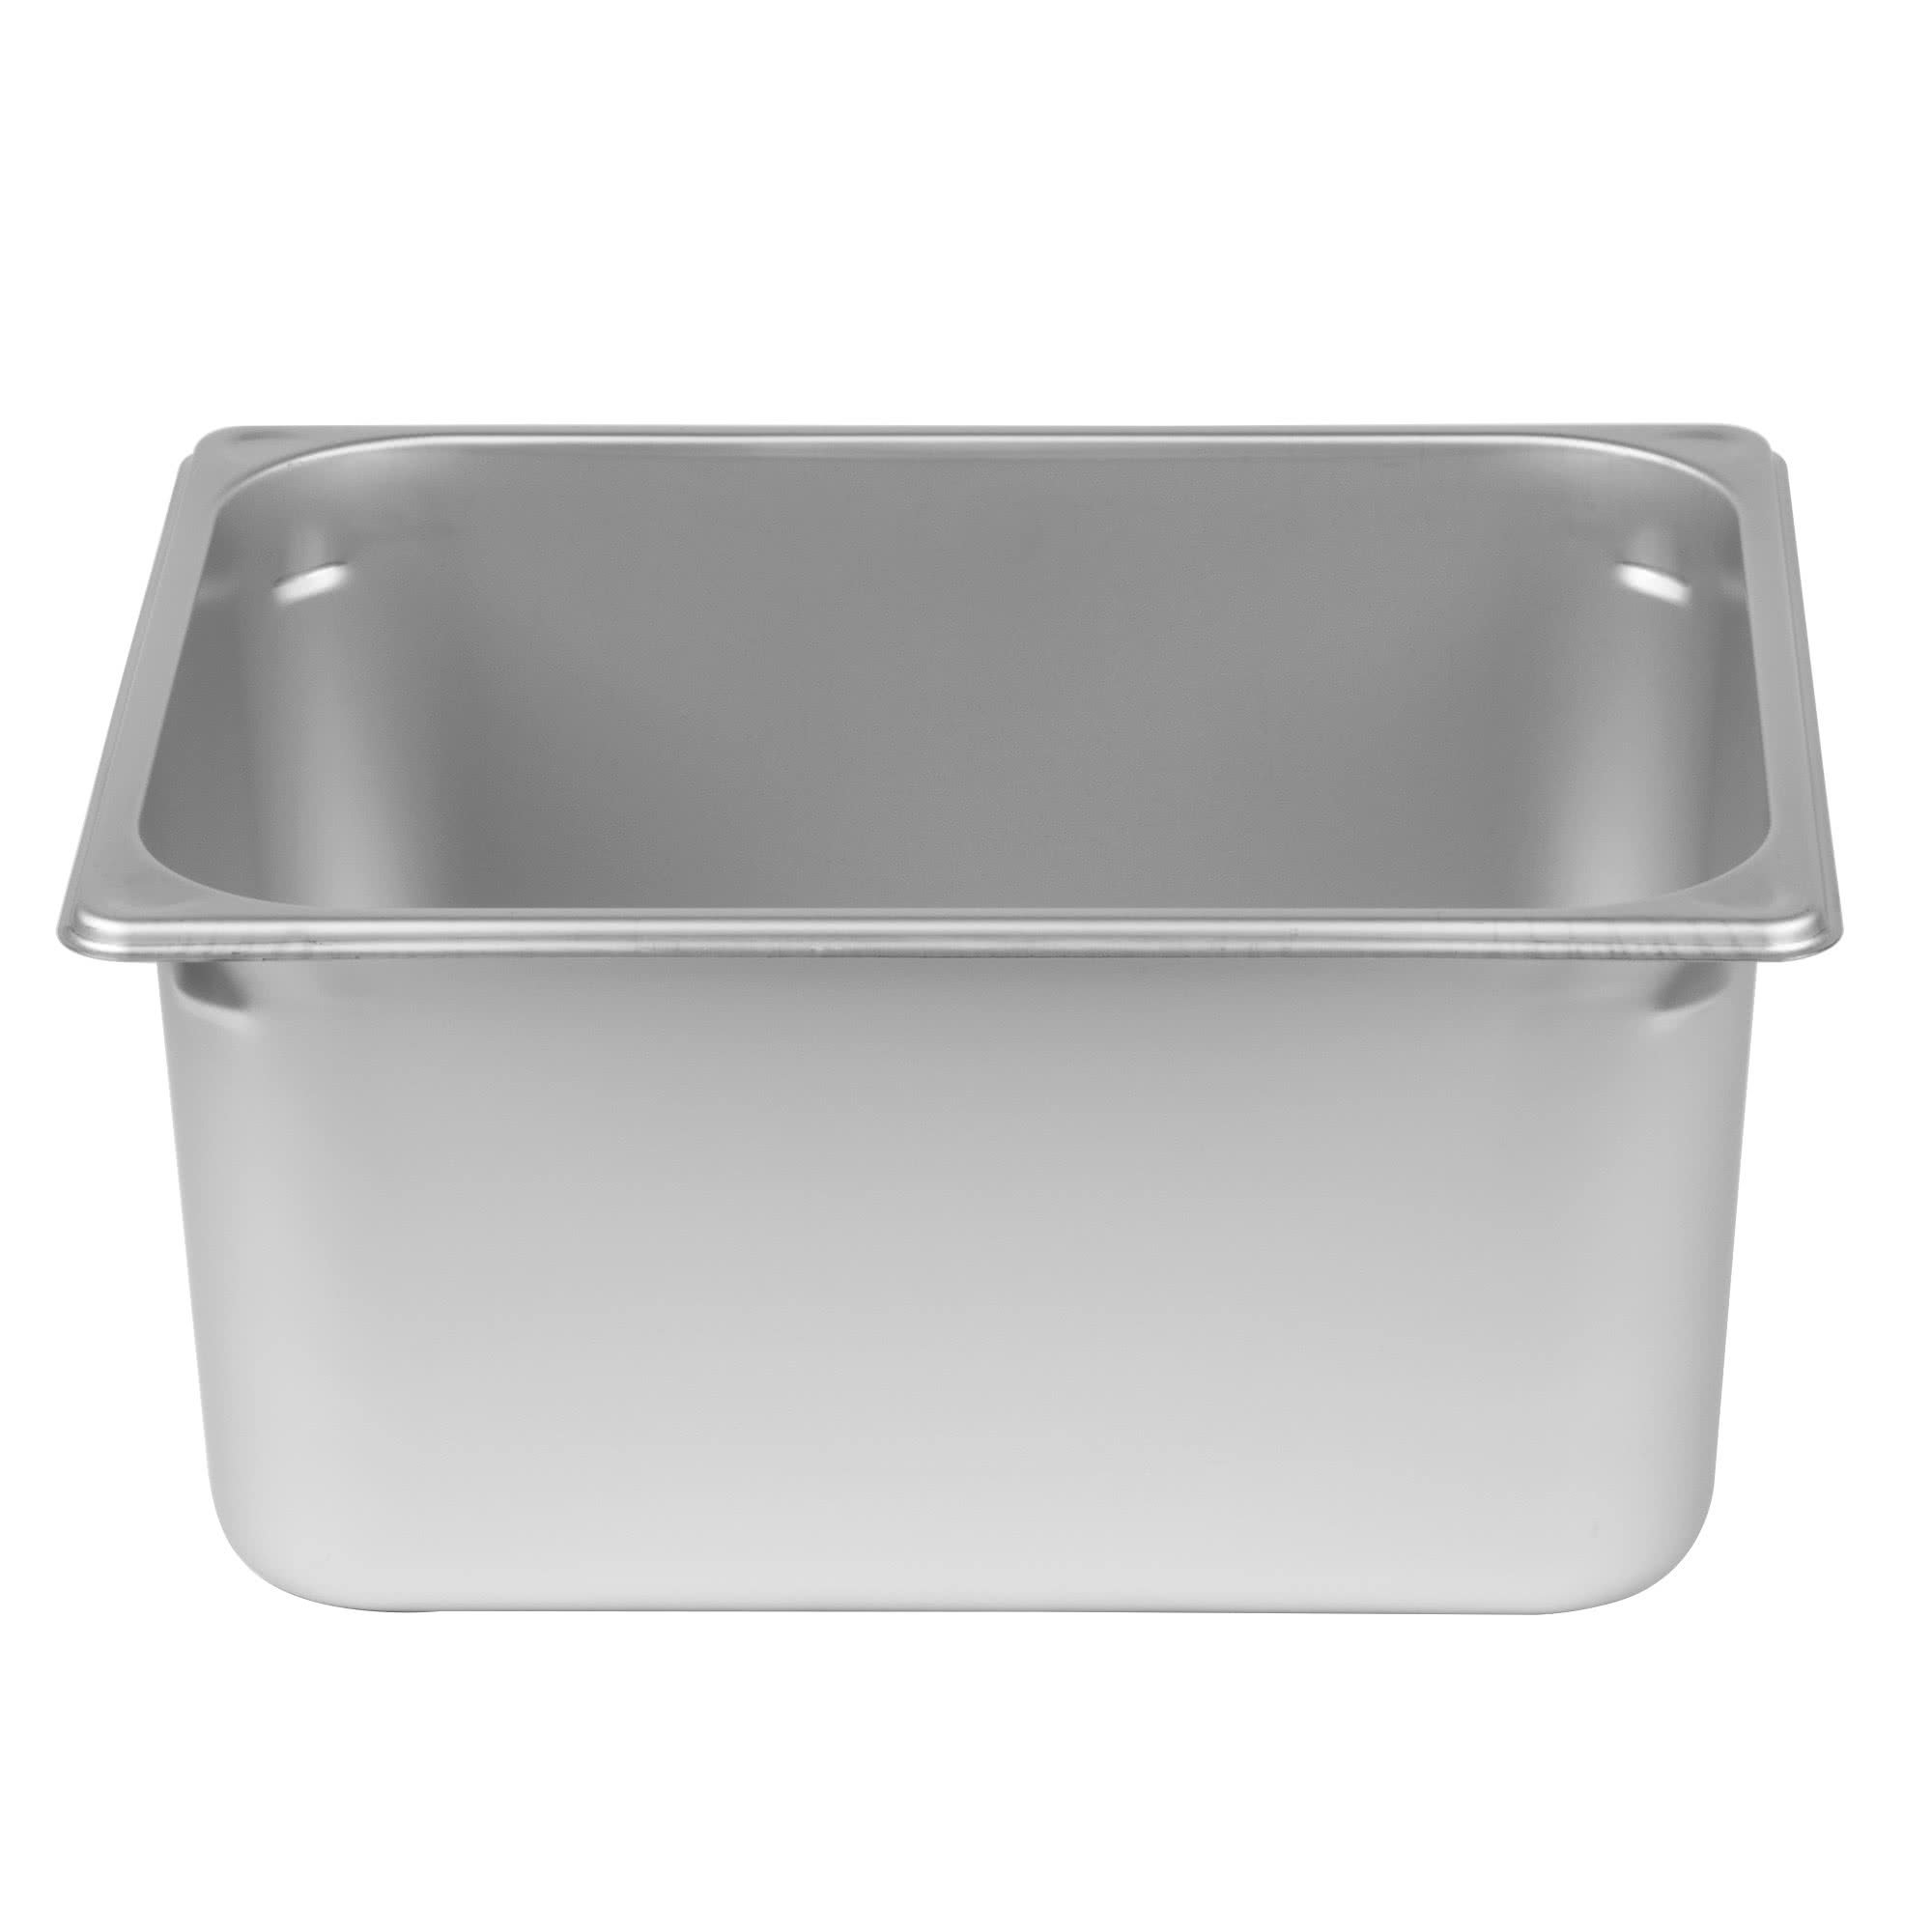 TableTop King 1/2 Size Anti-Jam Stainless Steel Steam Table / Hotel Pan - 6'' Deep